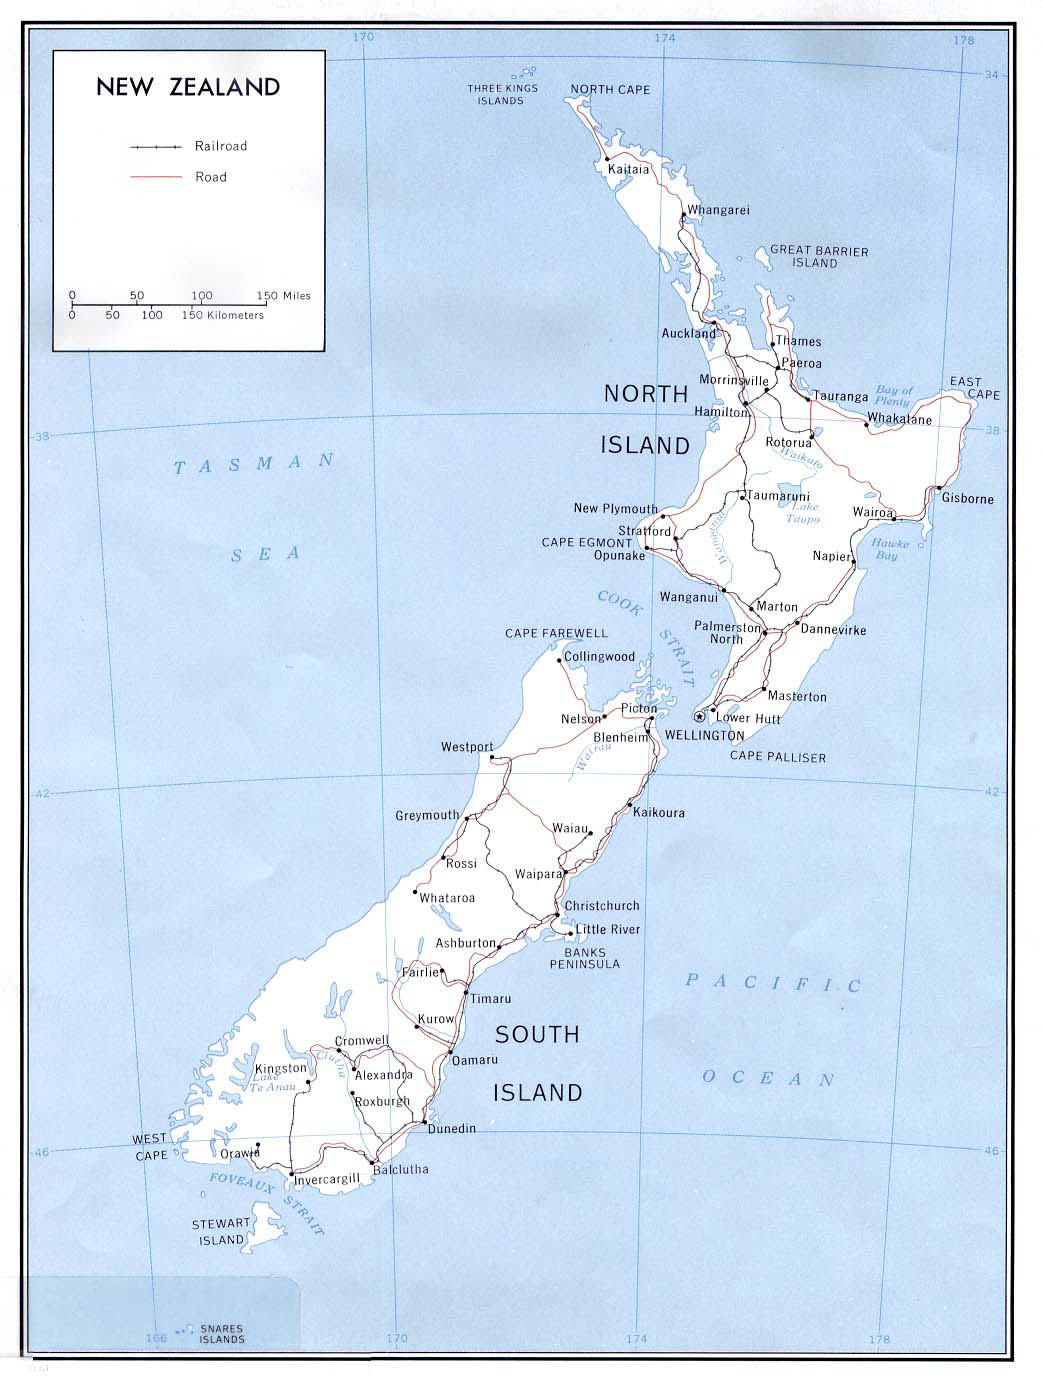 Political Map Of New Zealand.Large Detailed Political Map Of New Zealand With Roads And Cities